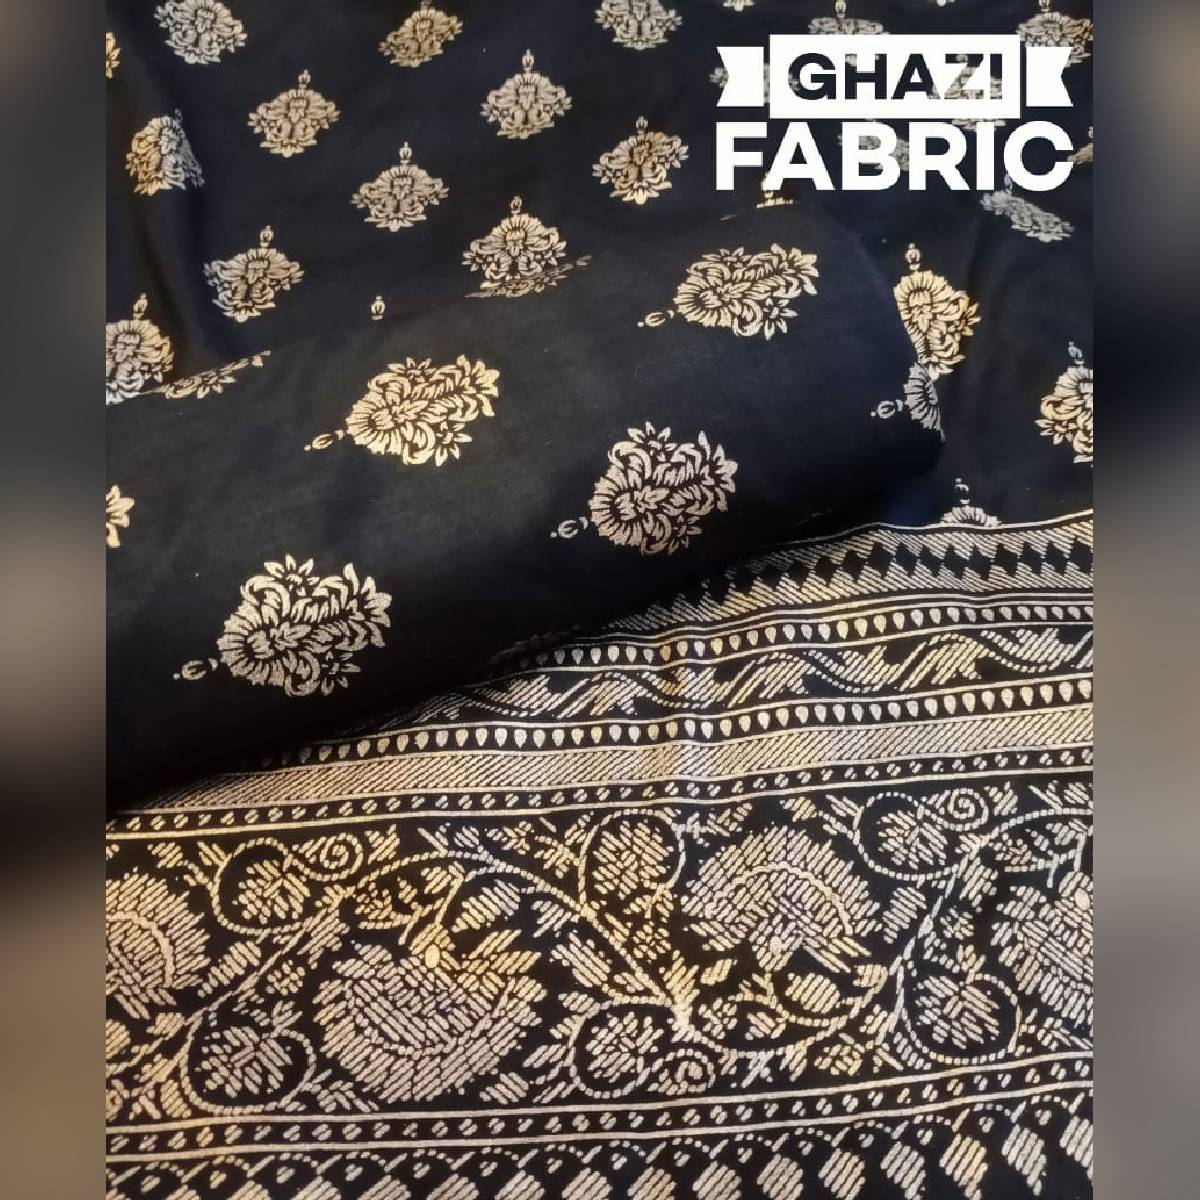 Ghazi fabric new linen collection shirt and DUPPTA printed fabric new linen design party dress primeum quality simple elegant trendy fabric  5.50/yards